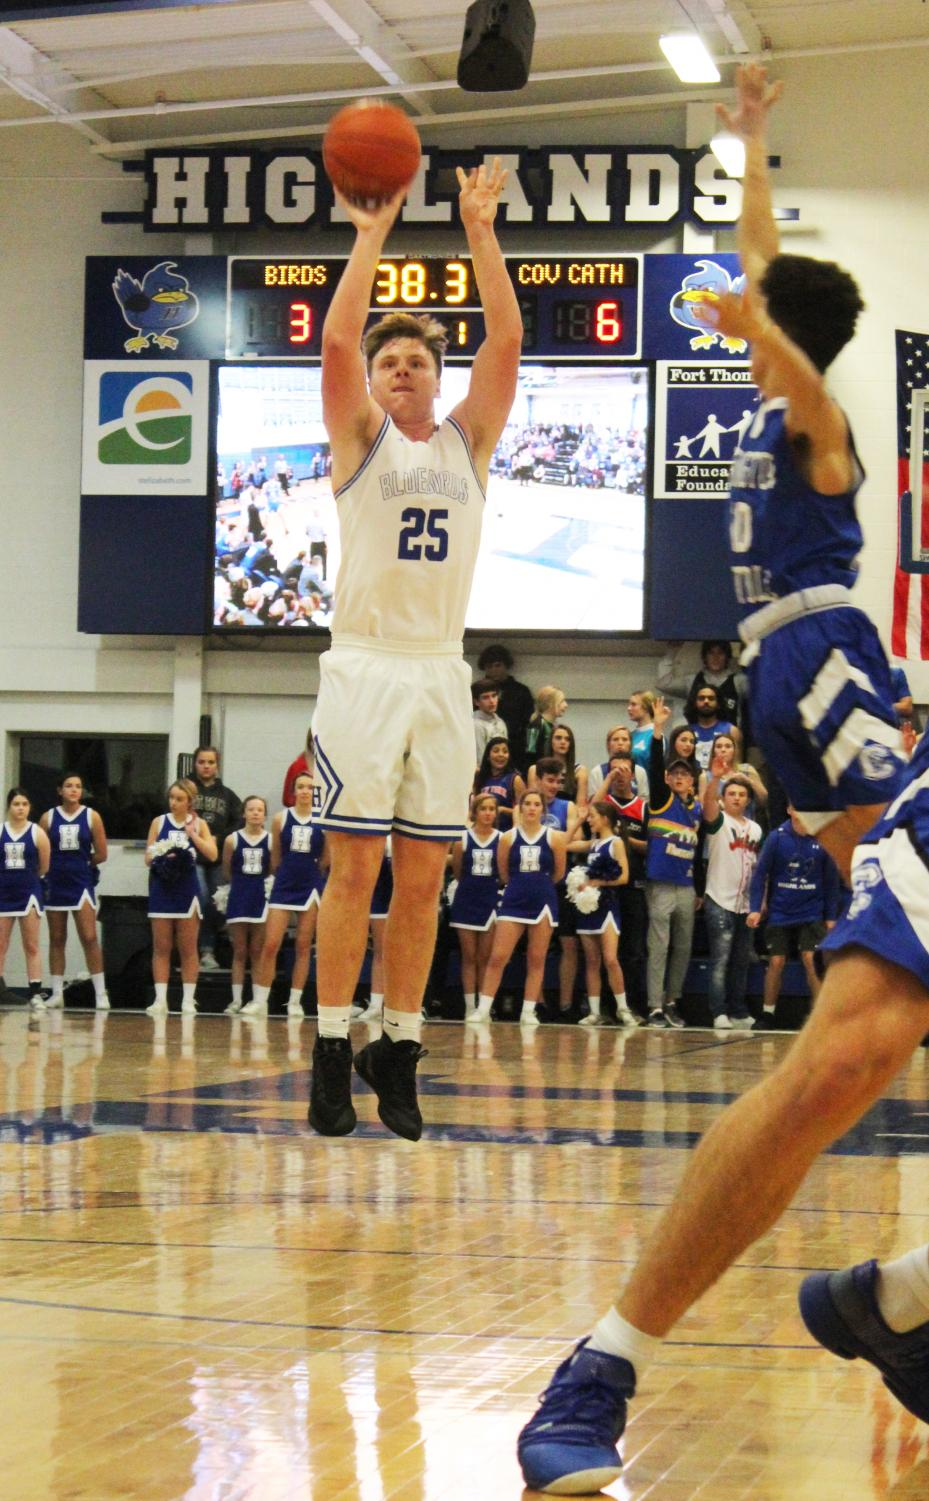 Senior Will Salmon shoots a jump shot, putting the defense off balance